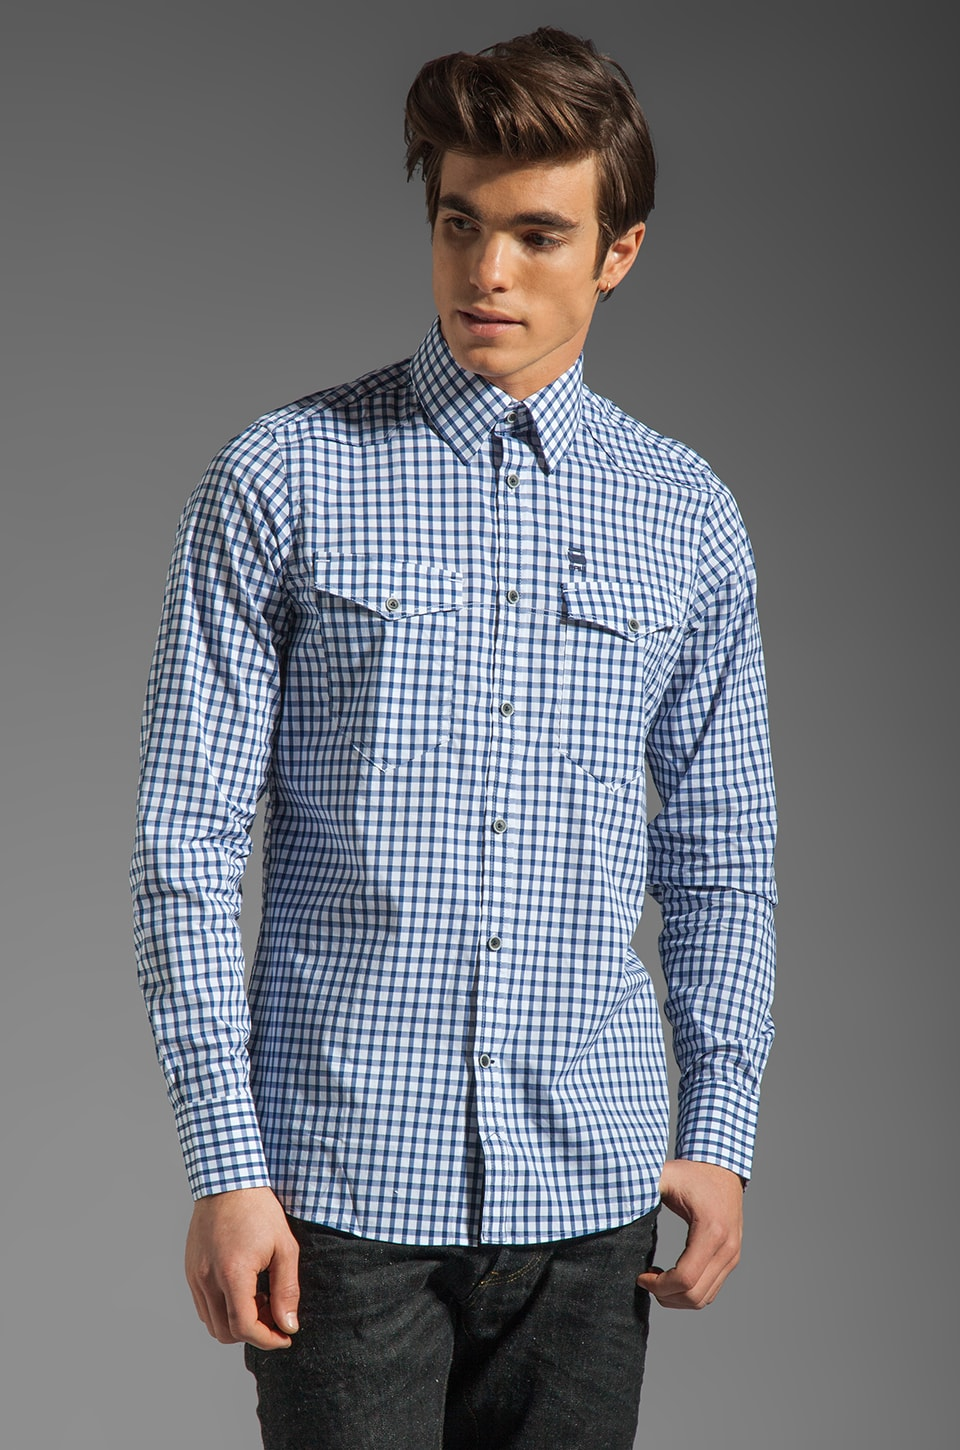 G-Star New Western Check Shirt in Swedish Blue